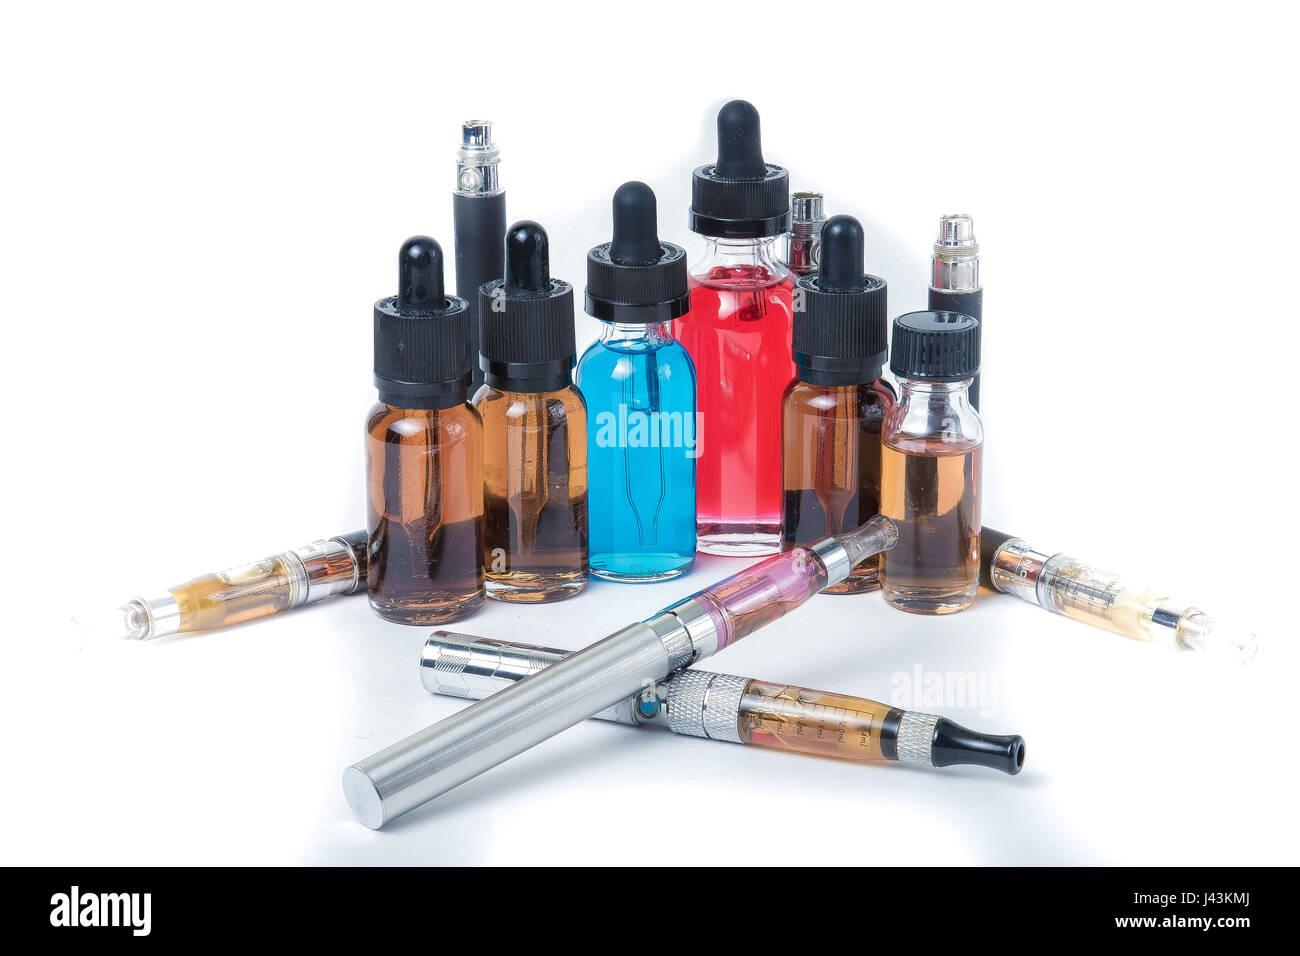 Thin e-cigarettes with glass bottles on white background - Stock Image